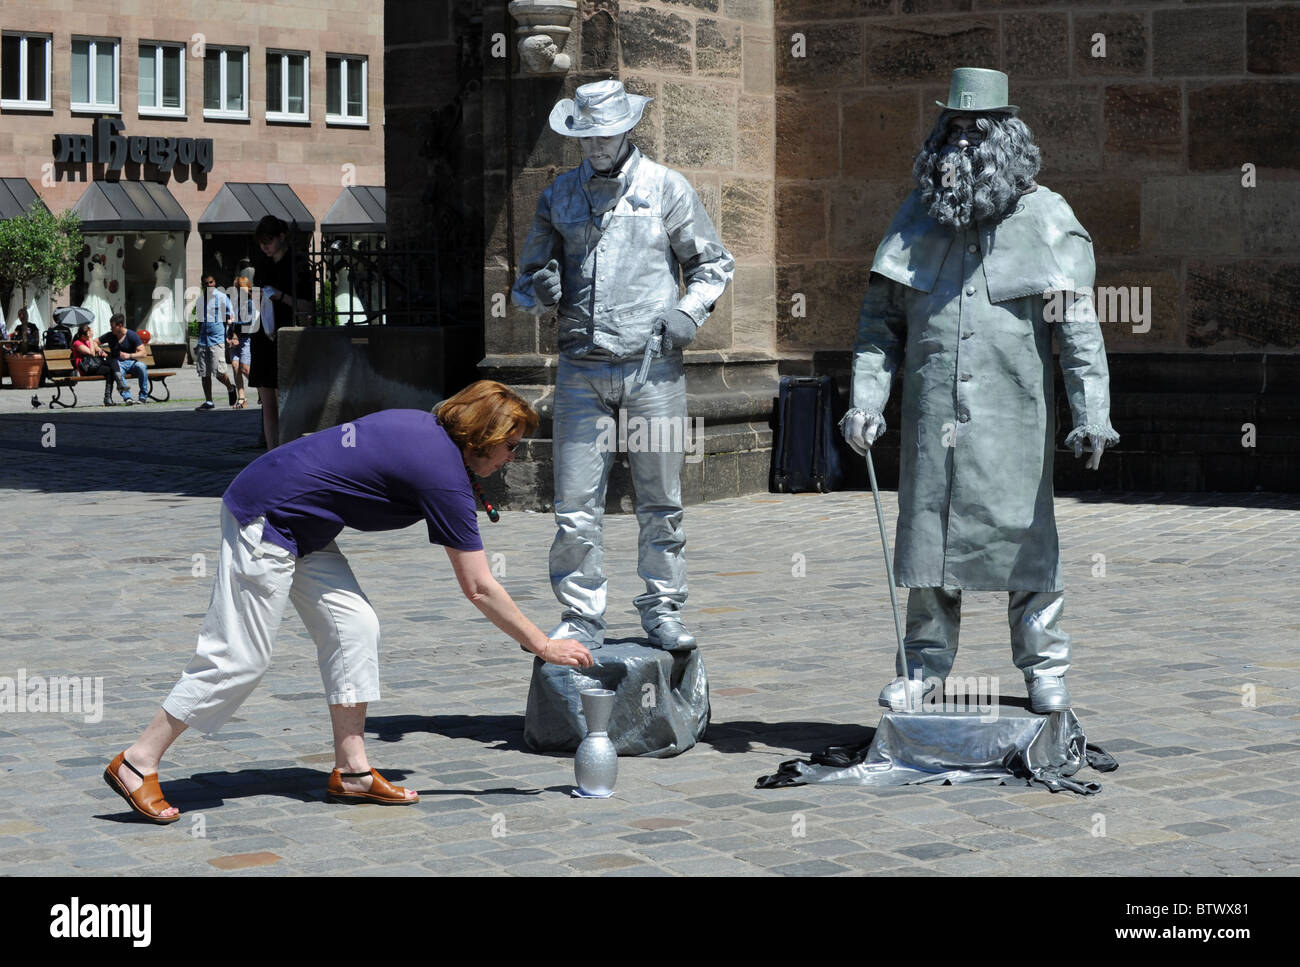 A woman contributes to mime artists performing in Nuremberg Germany Nurnberg Deutschland Europe - Stock Image